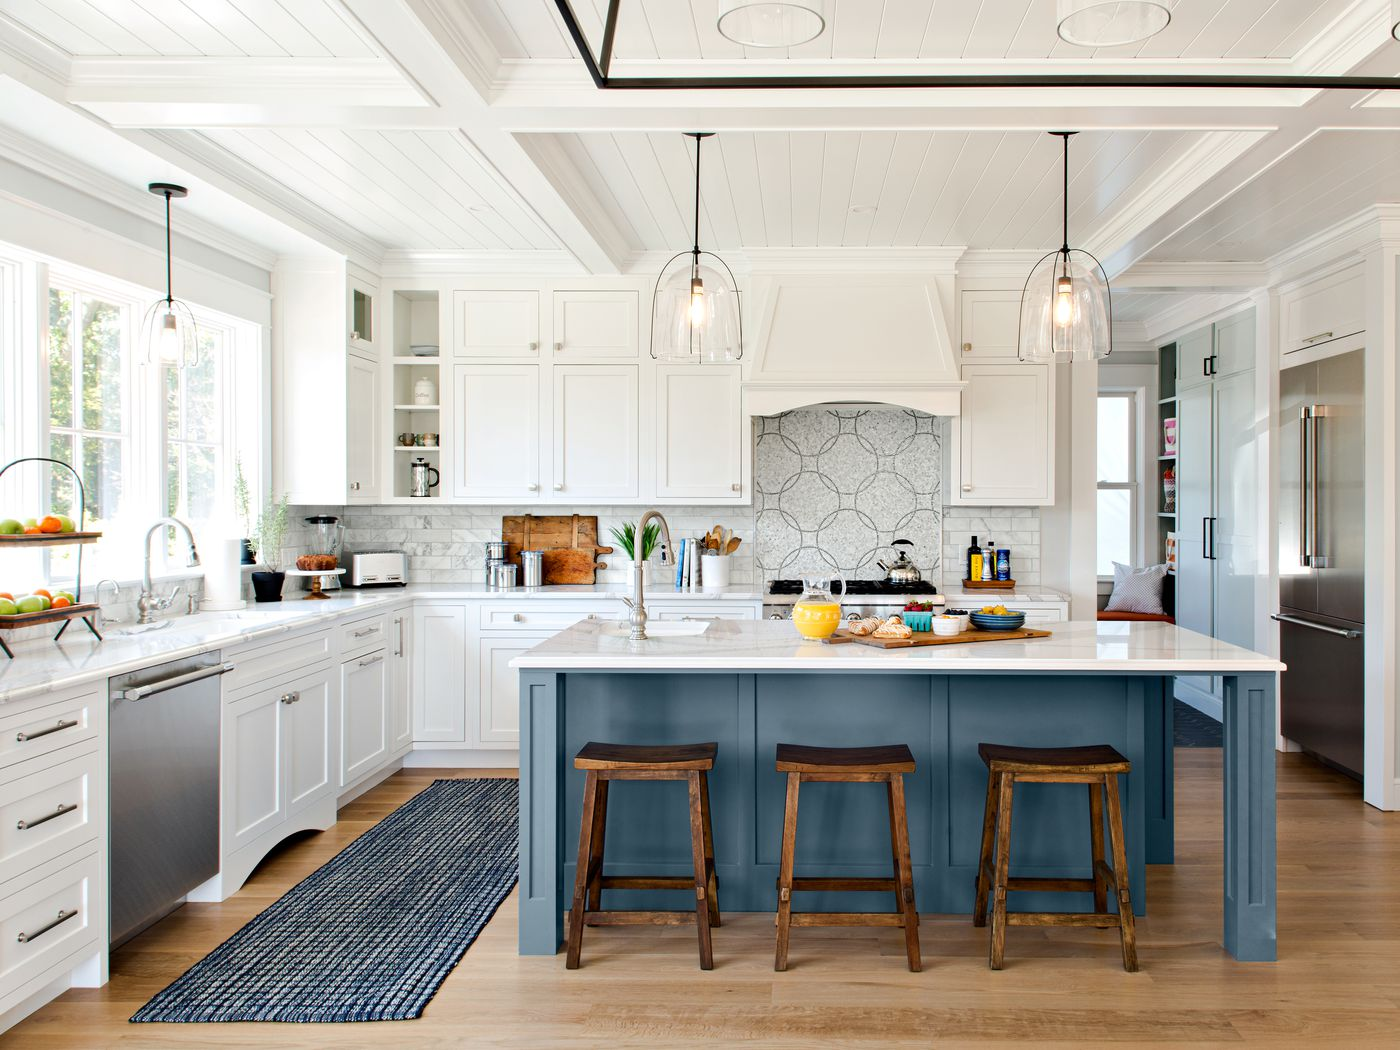 0120_Westerly_Reveal_6C_Kitchen_Alt_Angles_Lights_on_15